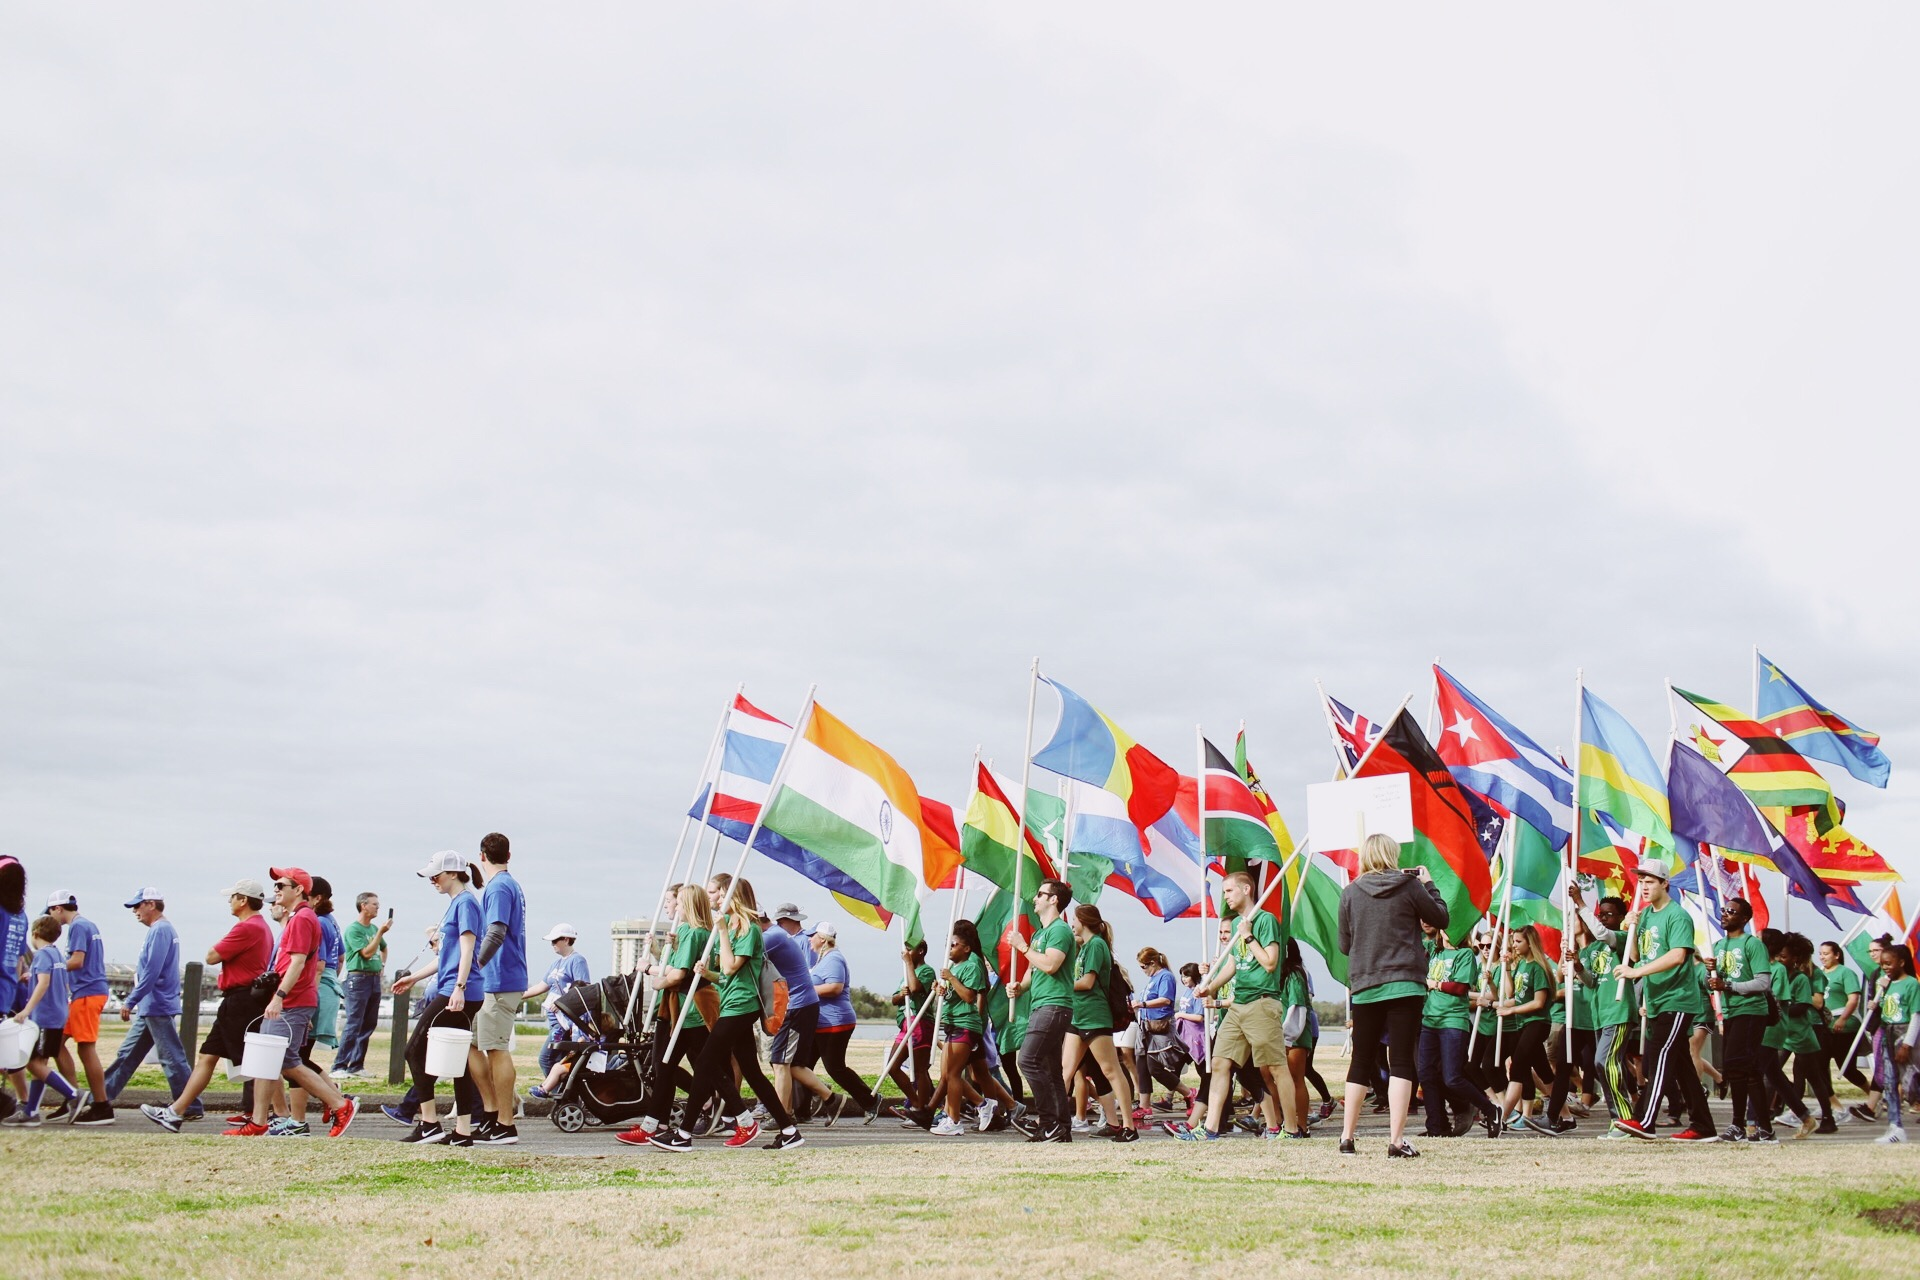 Volunteers carry flags to lead the group of 5,000 walk for water heroes.